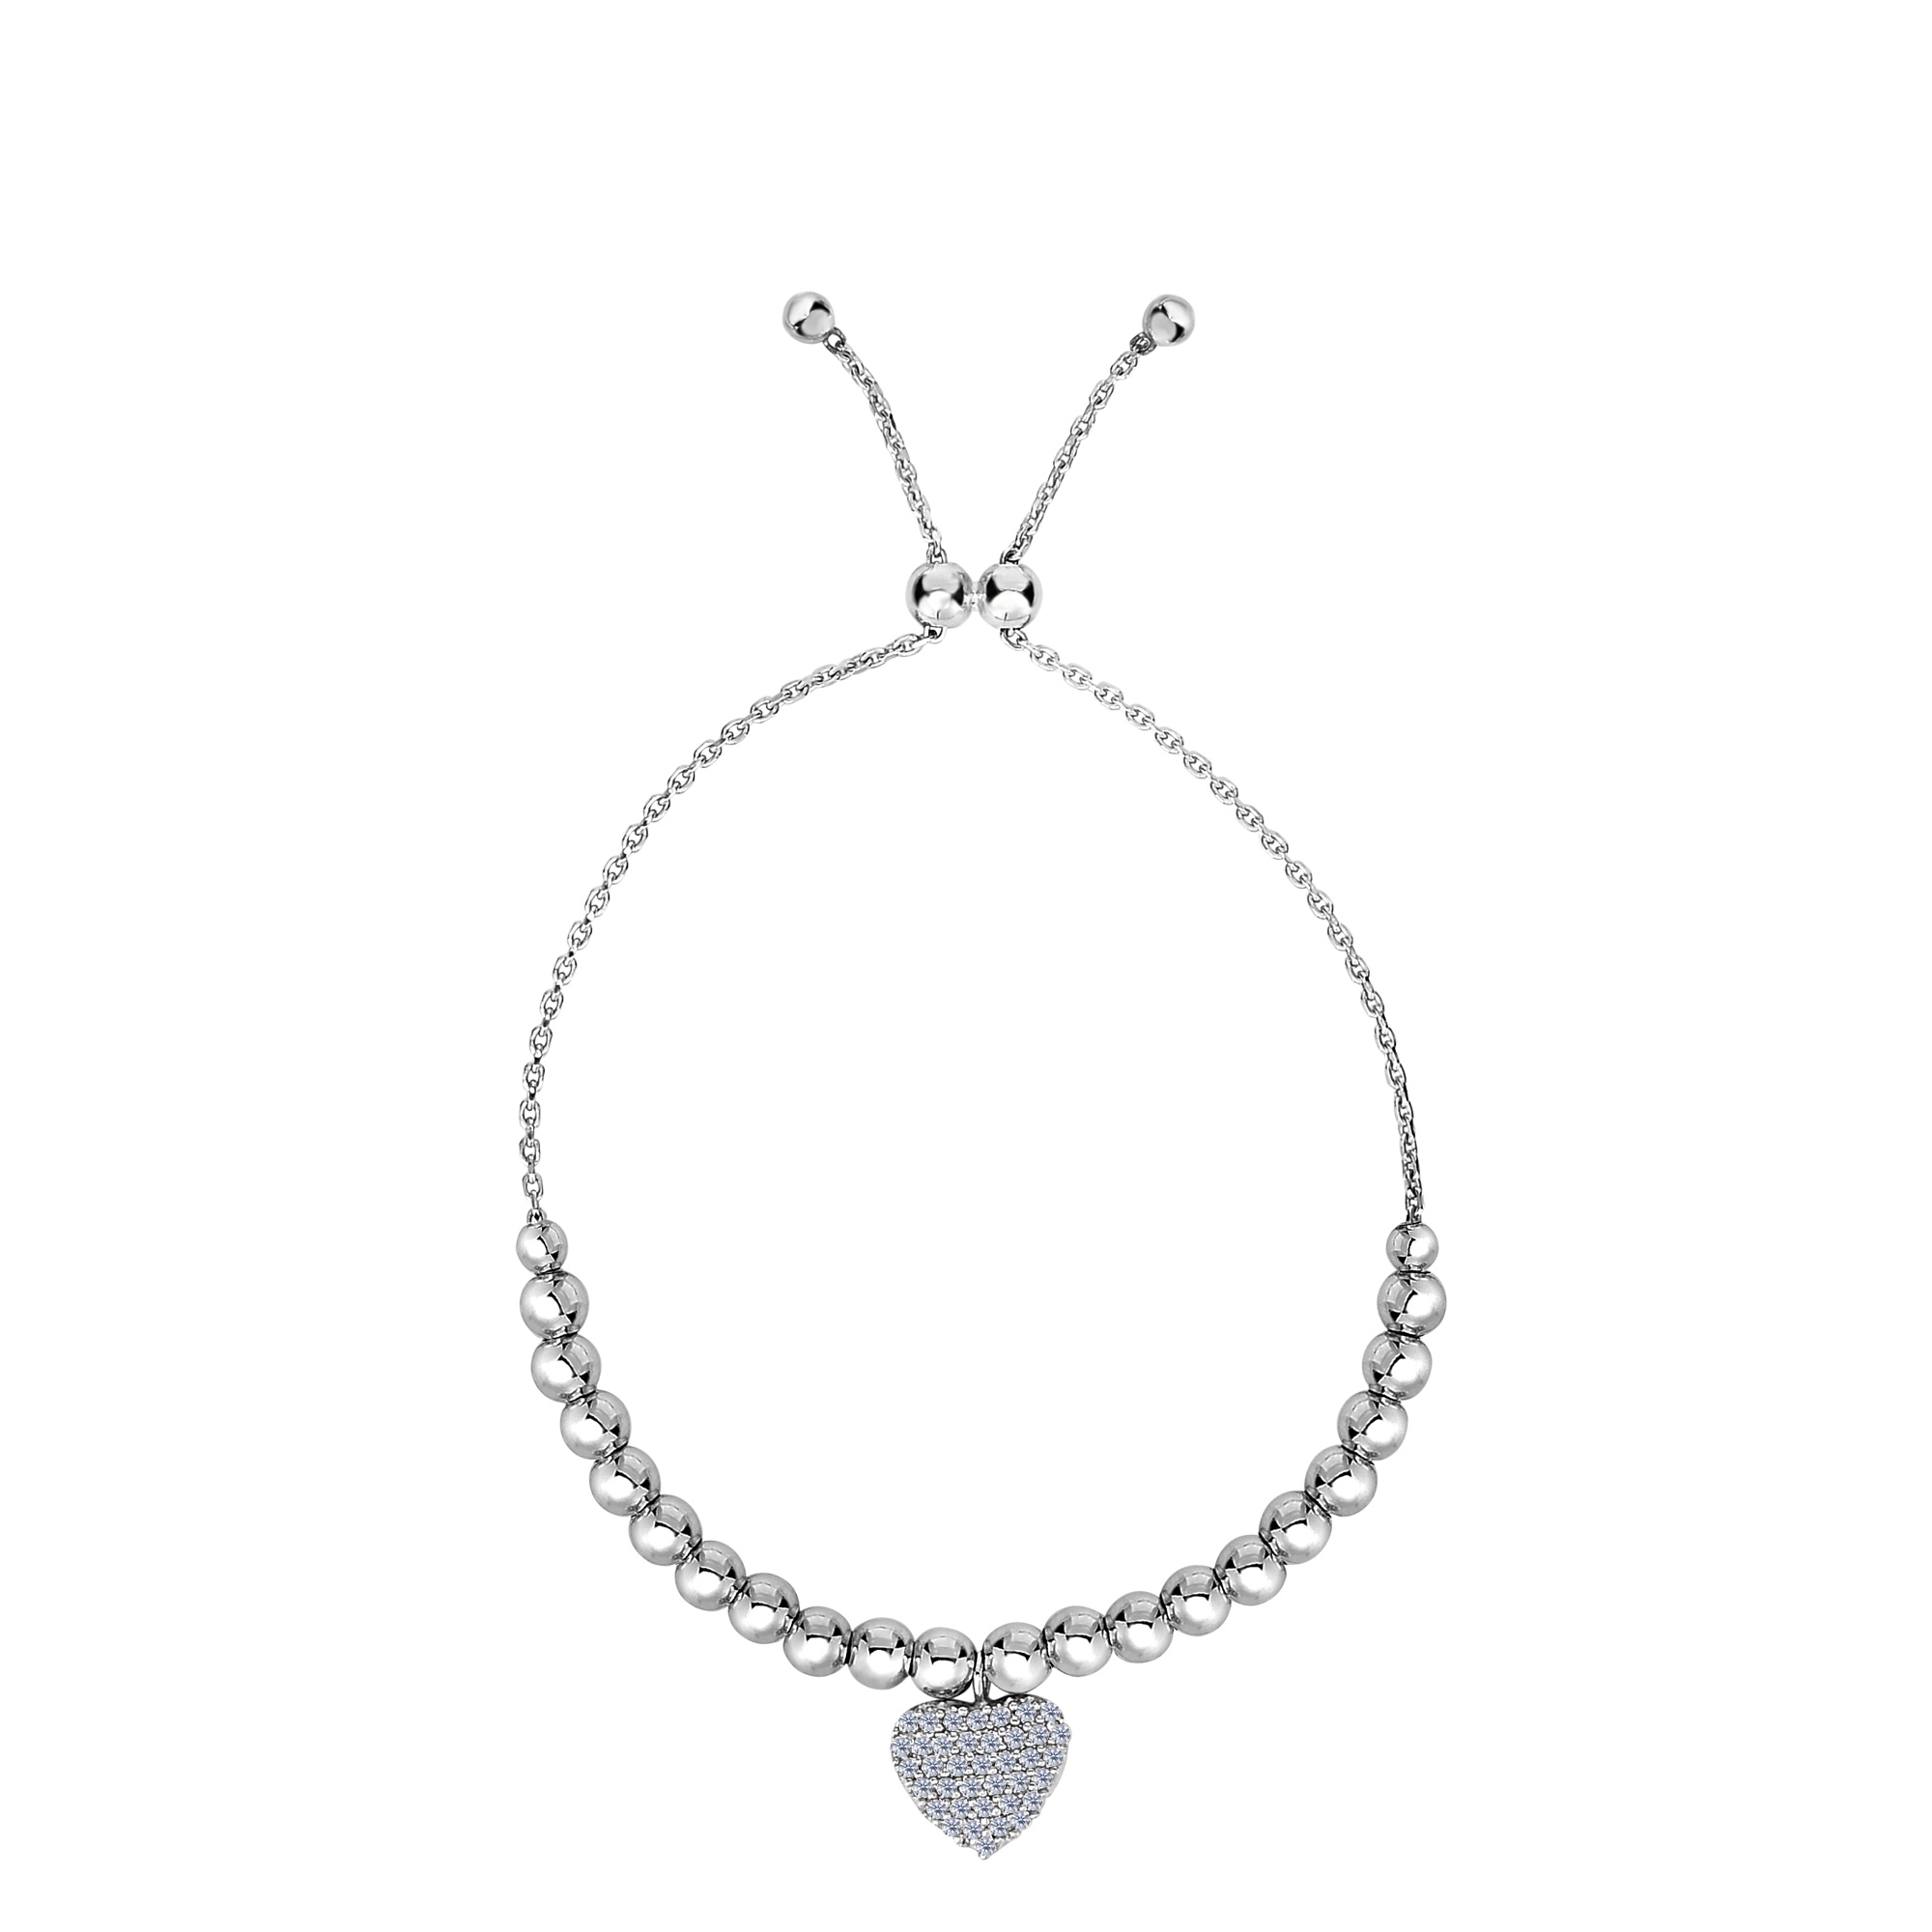 Sterling Silver Beads And CZ Heart Charm Element Adjustable Bolo Friendship Bracelet , 9.25  Designed for today's fast-moving, contemporary woman, the Friendship bracelets are smart, stylish and easy to wear. Meticulously executed in high quality Rhodium plated sterling silver, these iconic bracelets are easily adjusted to fit any wrist. The Adjustable sliding closure allows you to go from 9.25 inches length to as small as allowed by the design.  Each unique style of our Friendship collection looks beautiful worn as one piece alone or stacked with multiple styles for a layered and modern look. The bracelet comes in an elegant jewelry gift box, perfect for any gift giving occasion.